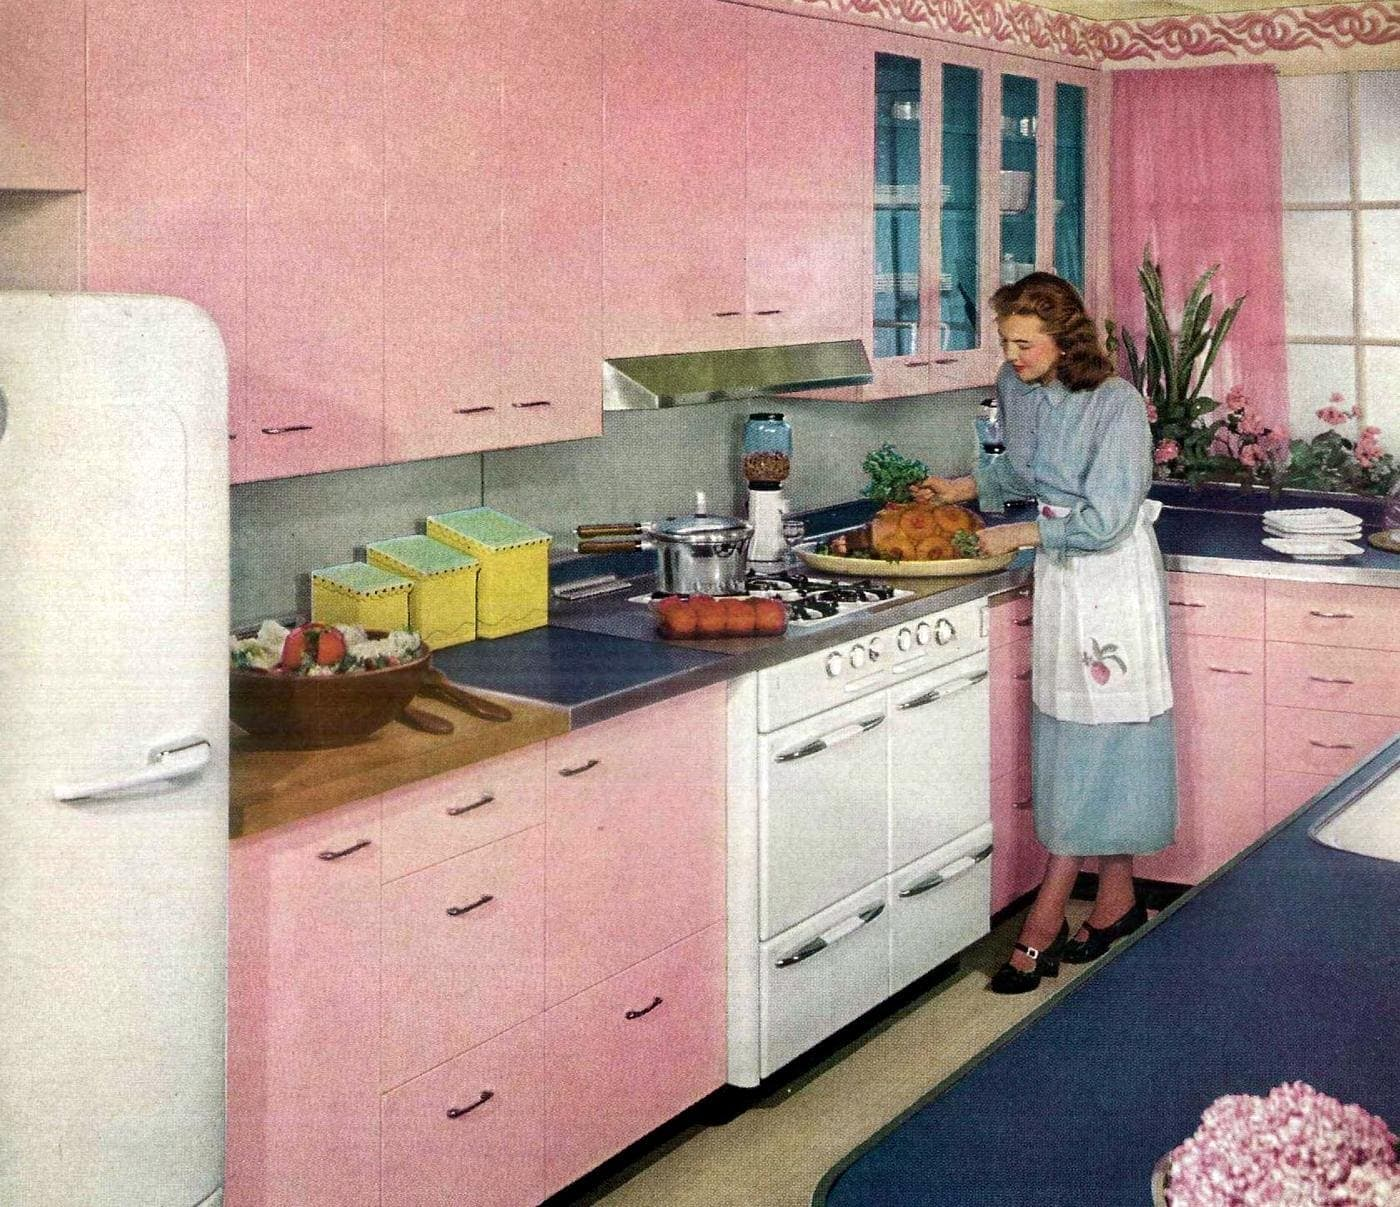 Your kitchen and you St. Charles Kitchens pink 1950